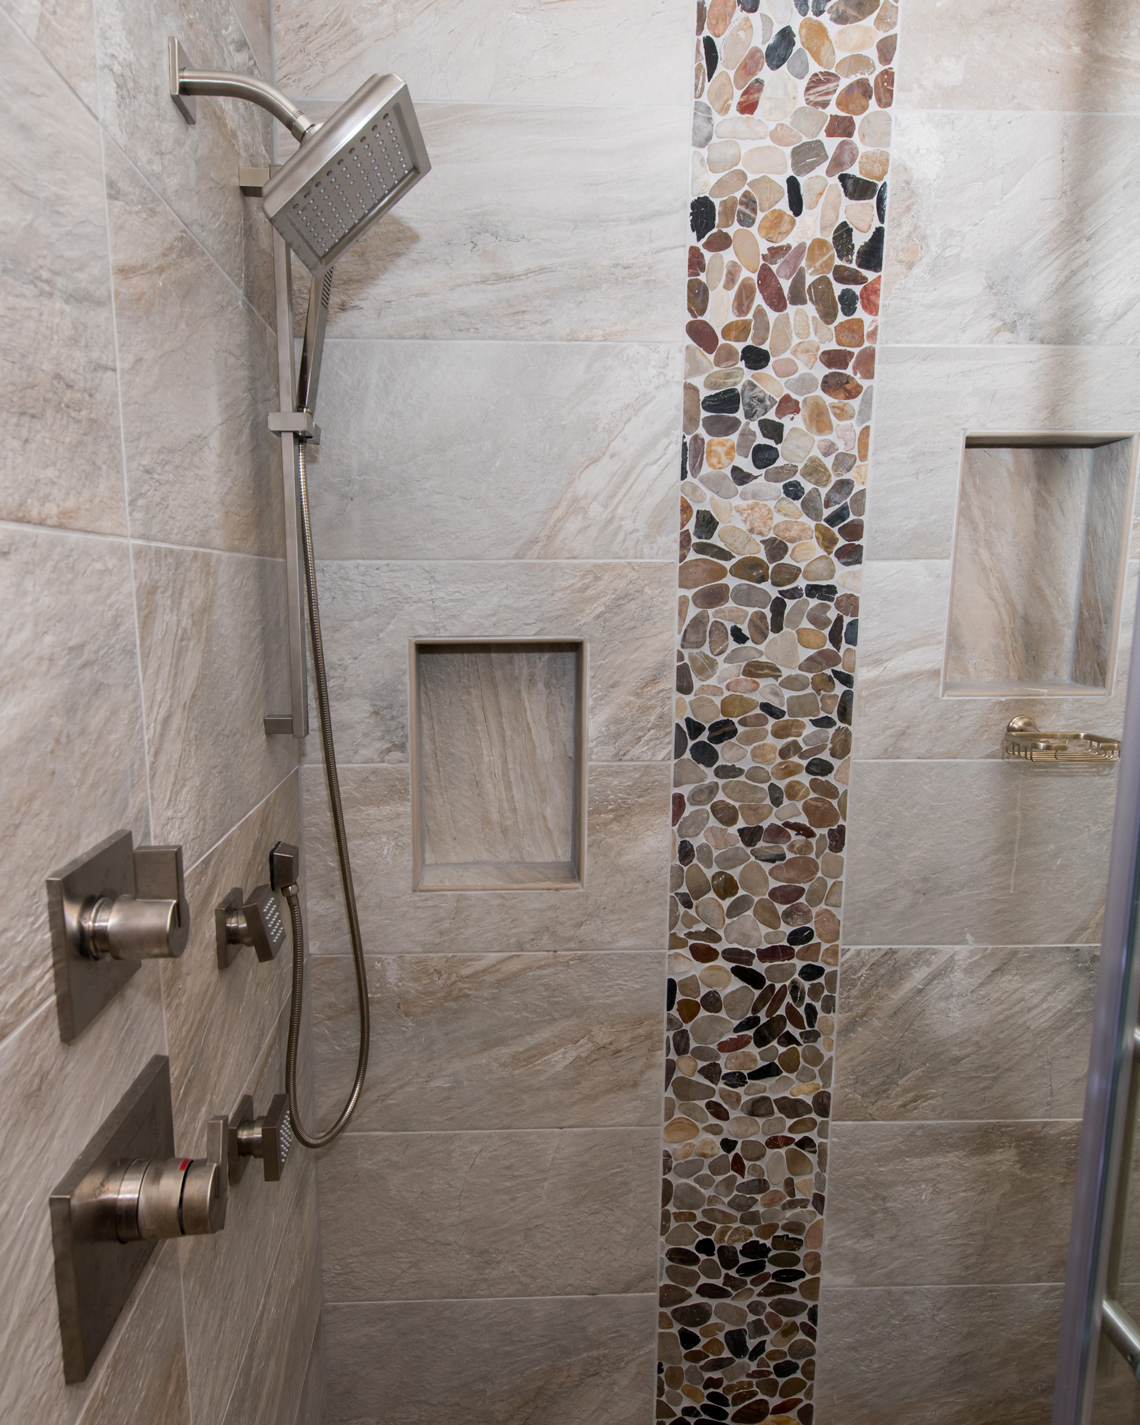 BHB-Behrmann-Home-Basics-Bathroom-Shower-Glass-Door-Tile-River-Rock-detail